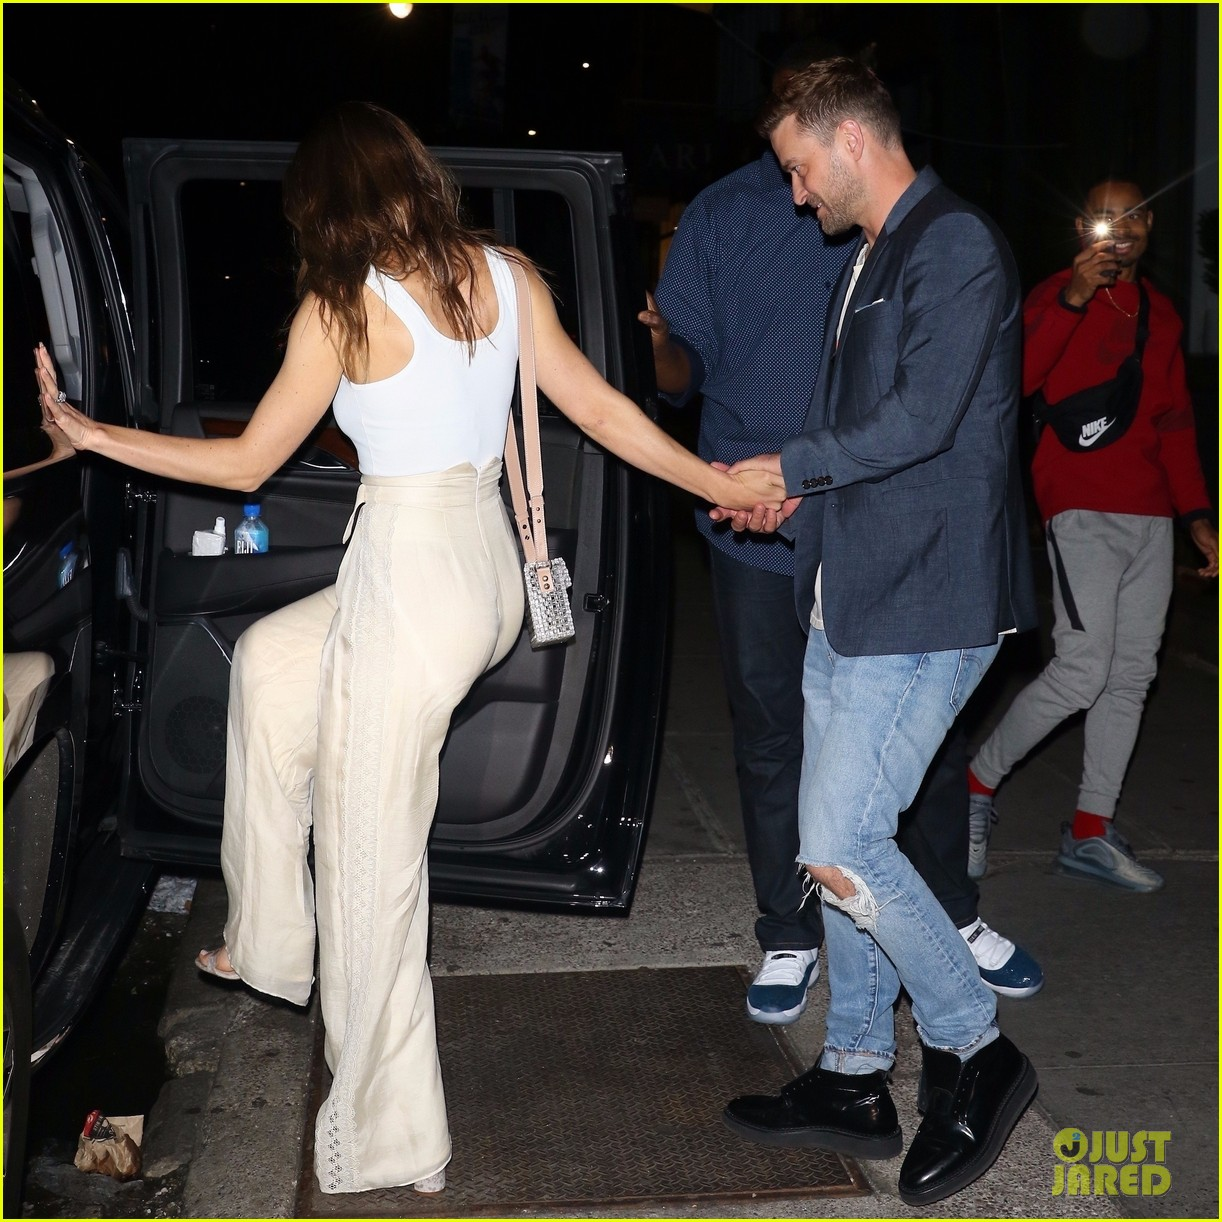 Jessica Biel Is All Smiles With Justin Timberlake After